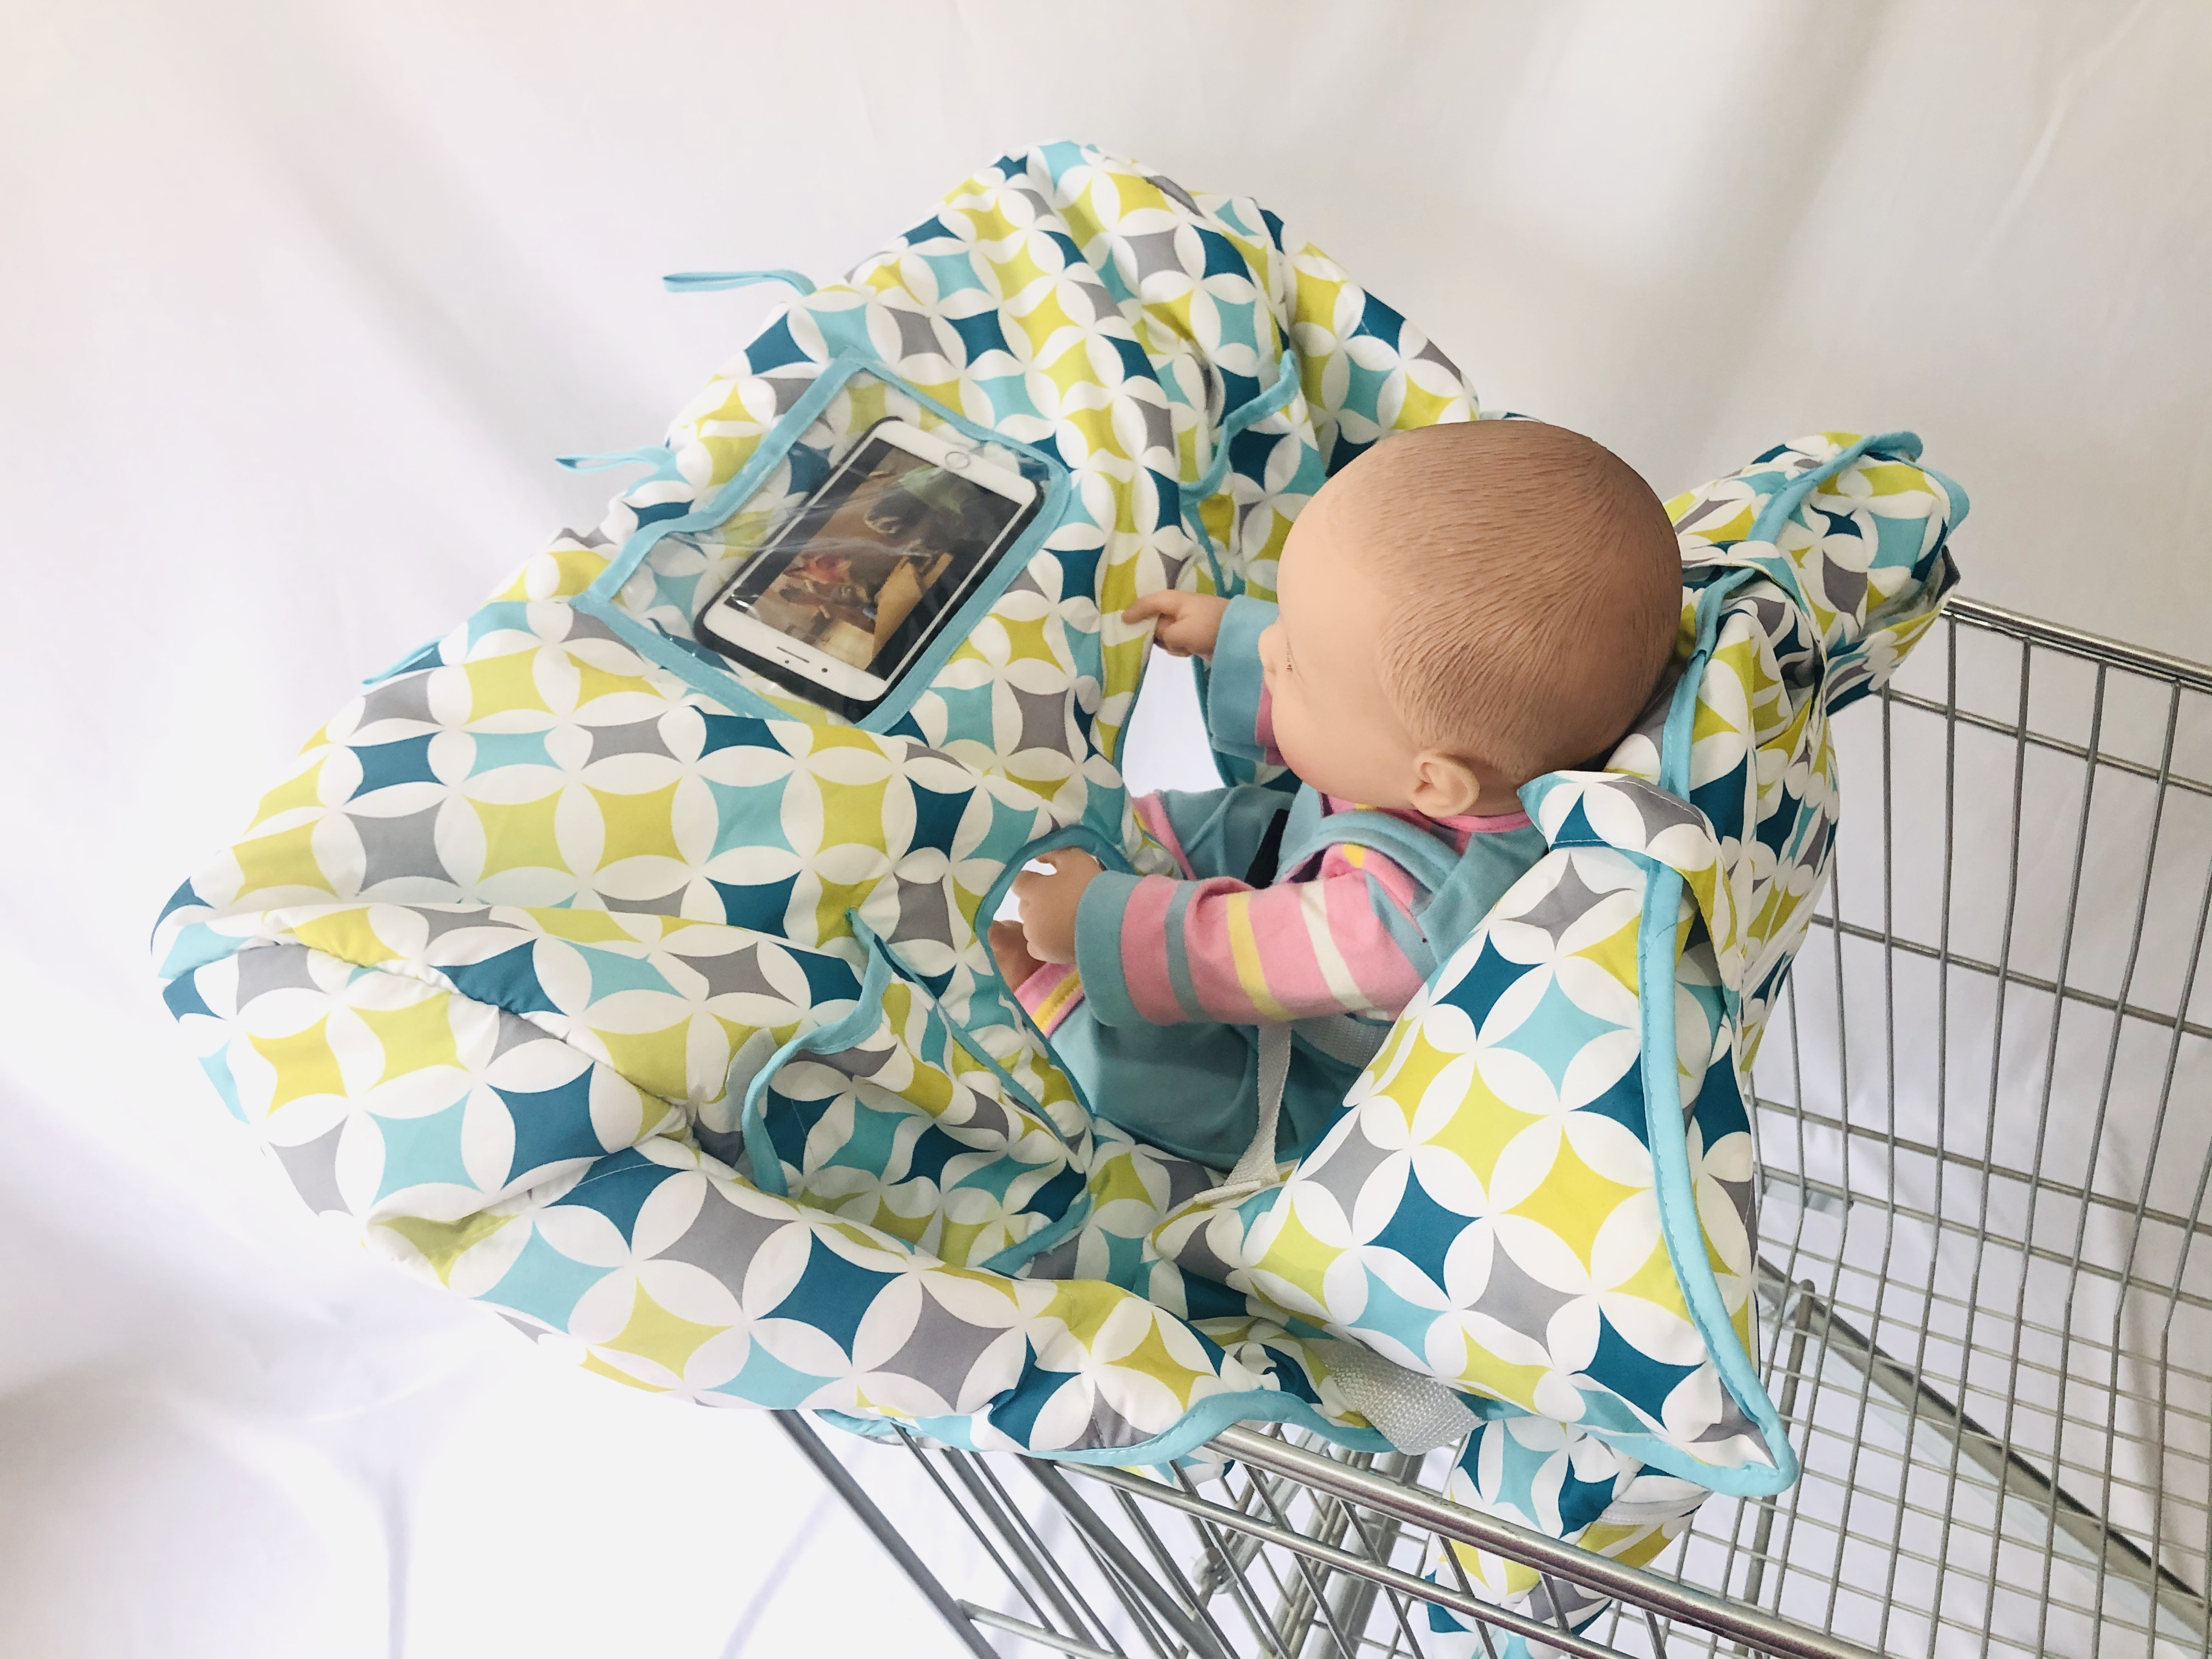 4 or 2 Leg Holes X-Large Size with Elastric Yellow Flower Cushion for Twin Double Shopping Cart Cover for Baby Siblings